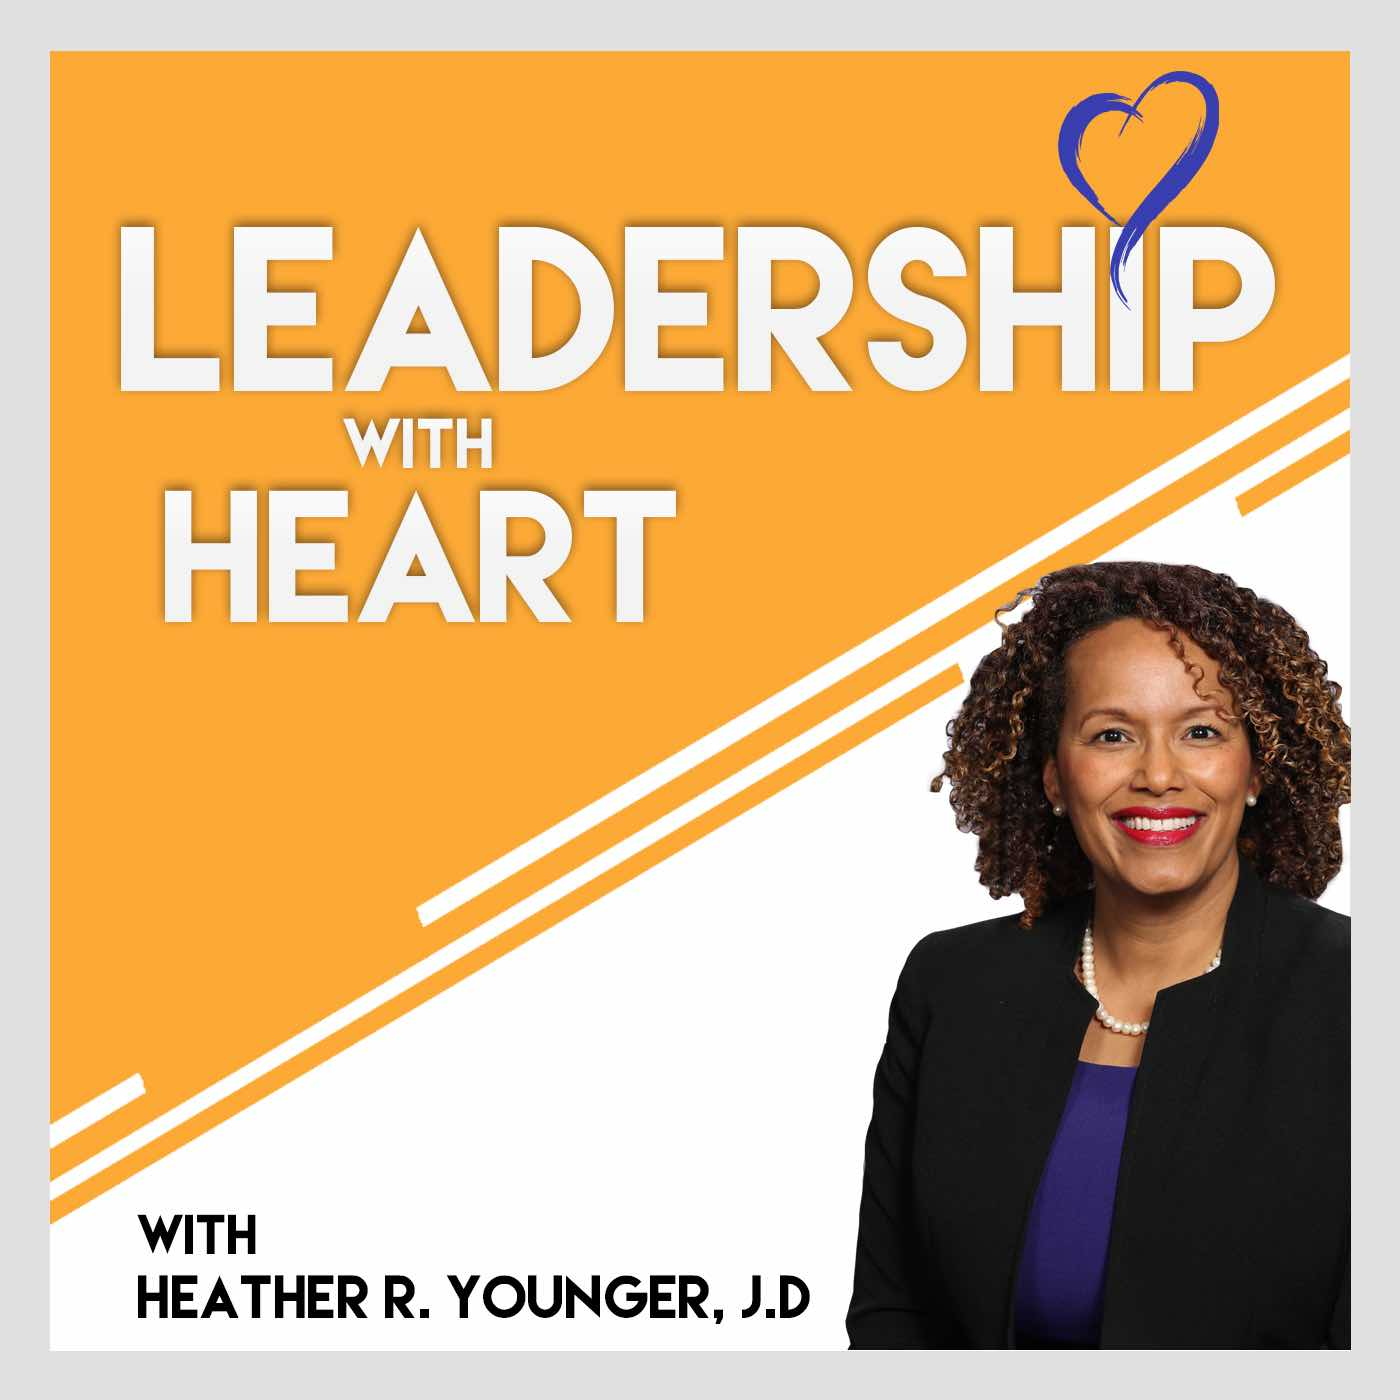 138: Leaders with Heart Do What Is Necessary to Lift Others